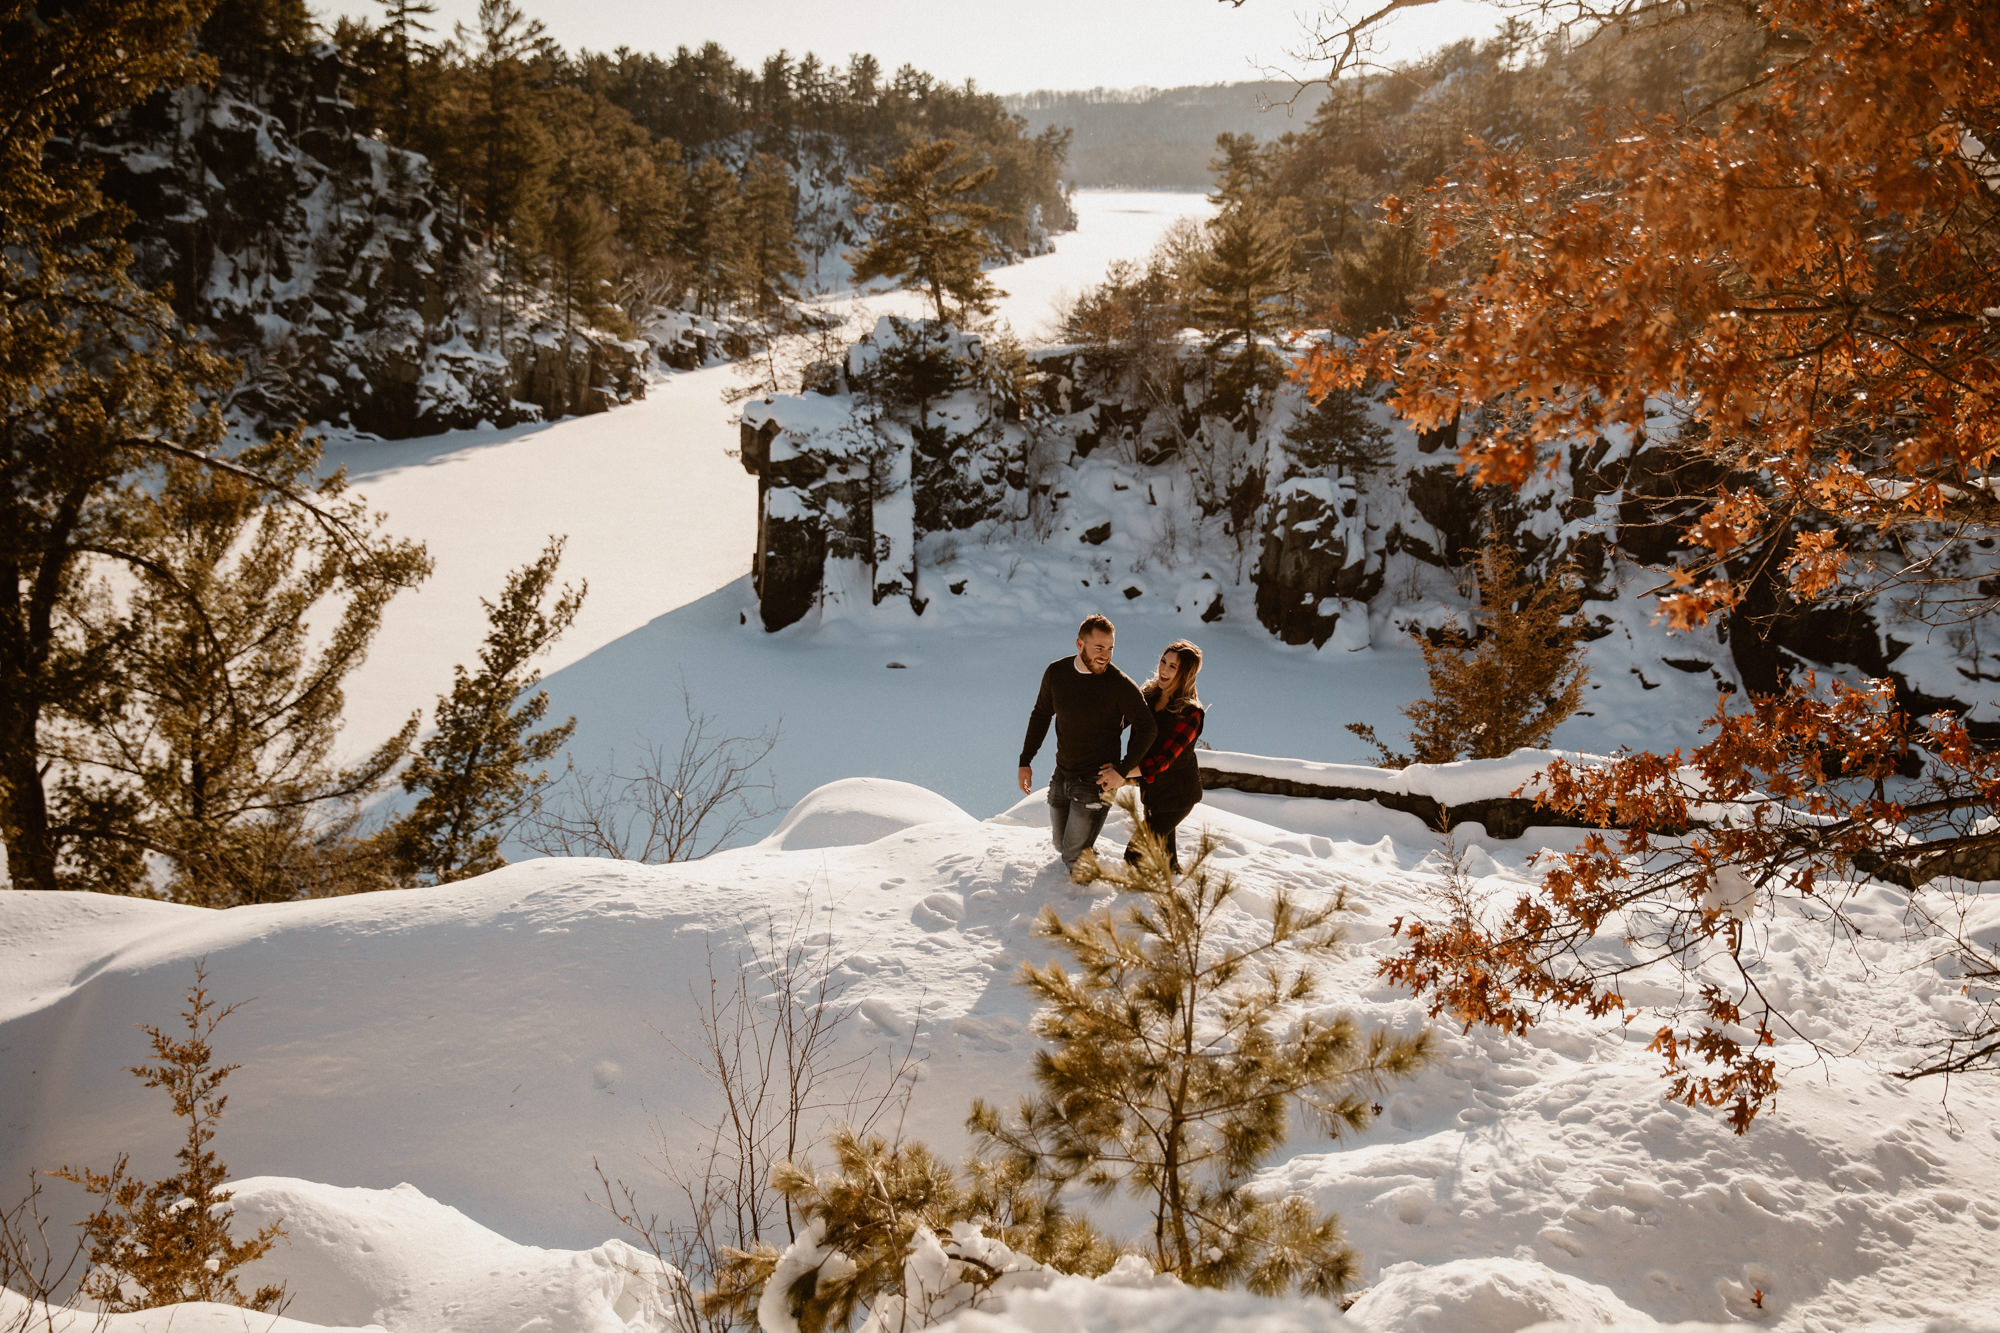 a couple hiking the epic landscape of the minnesota bluffs over the st. croix river.